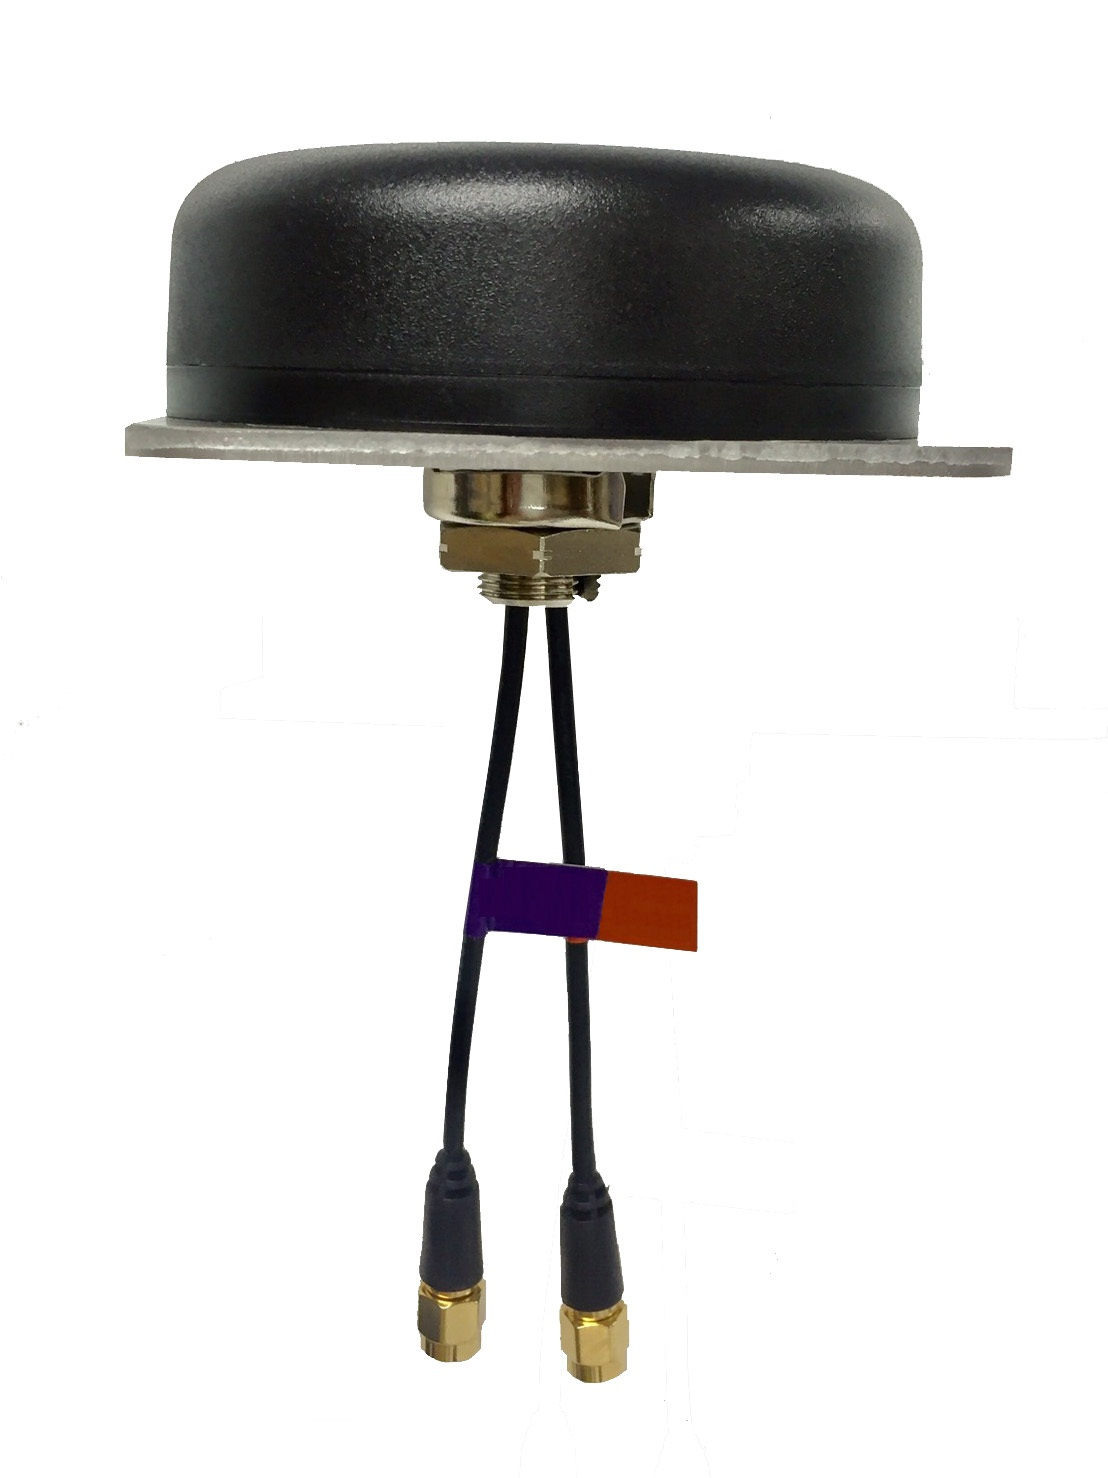 Bus Car Combined  Antennas for Car Electronic Accessories made by Chinmore Industry Co., LTD. 竣茂工業有限公司 - MatchSupplier.com